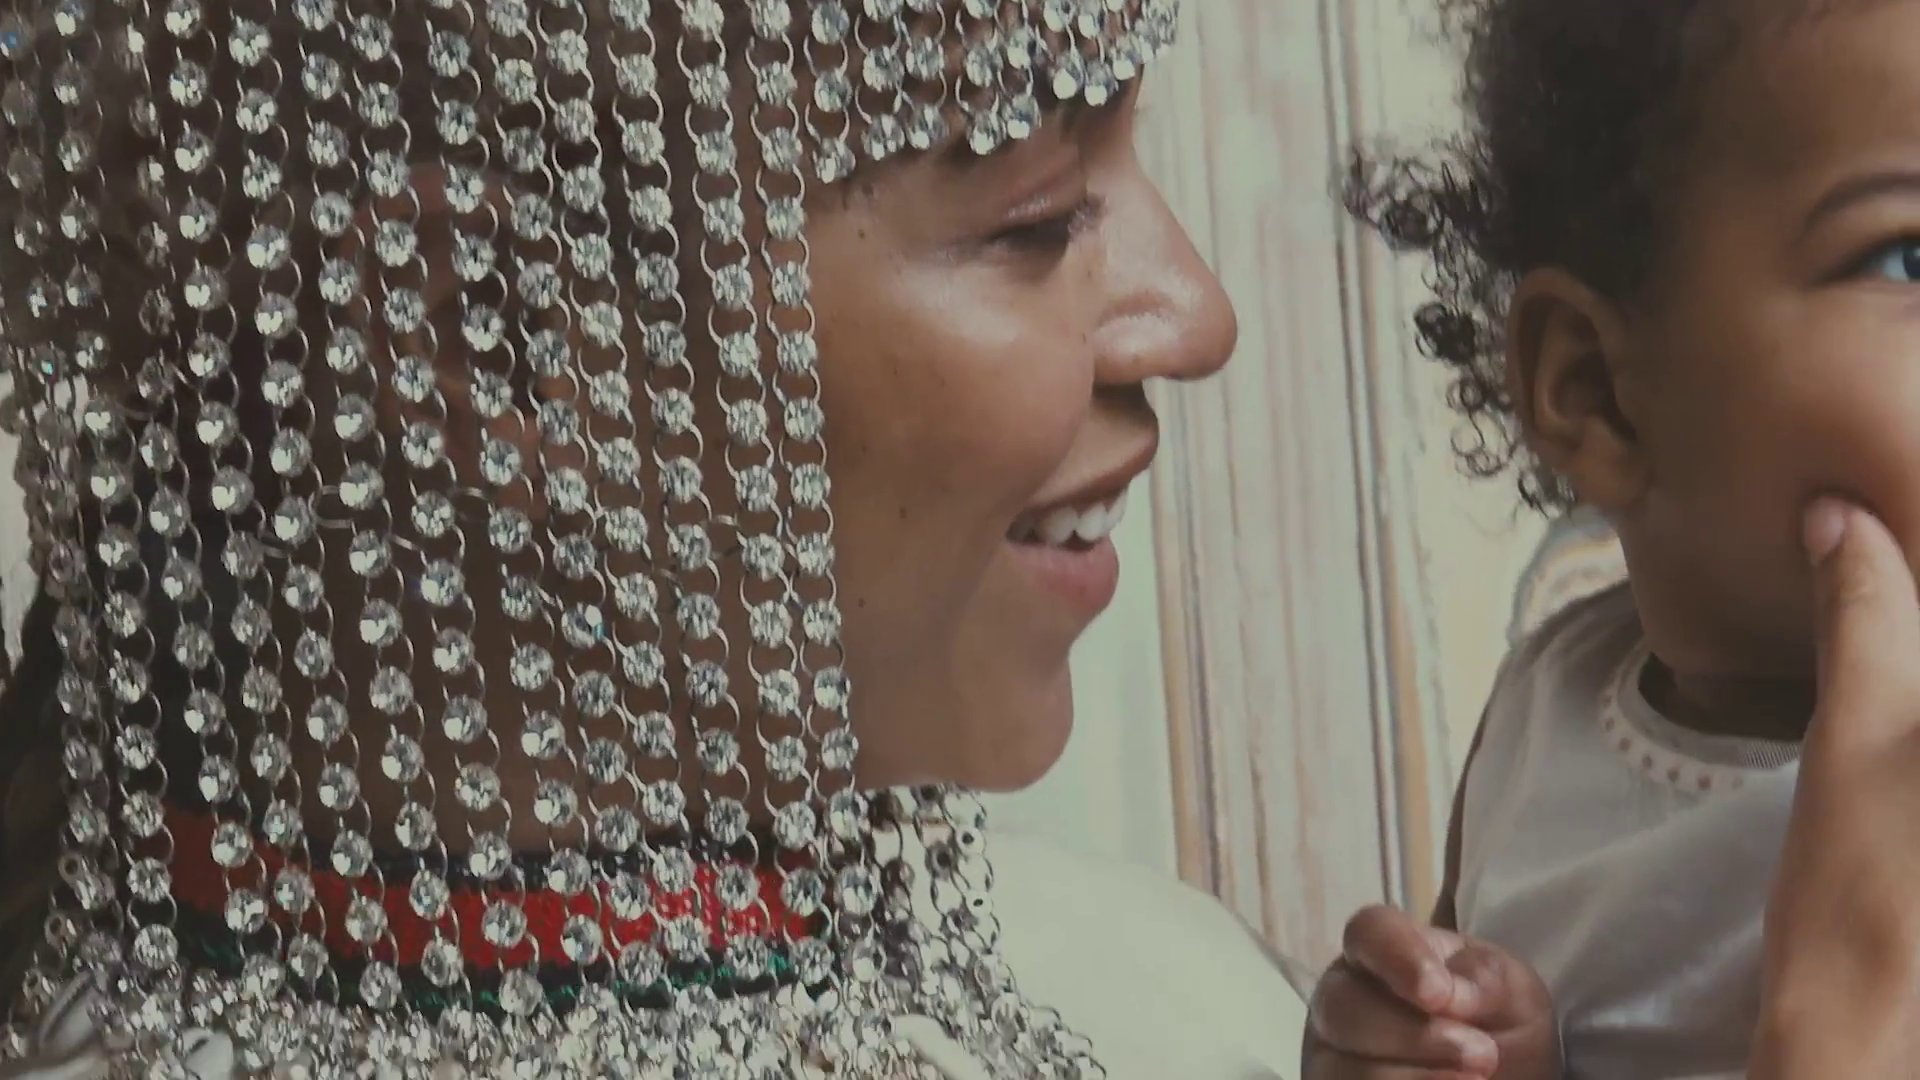 Behind The Scenes: Beyoncé for VOGUE September Issue 2018. ��  https://t.co/axPX6gyP4e https://t.co/uov1szADrq